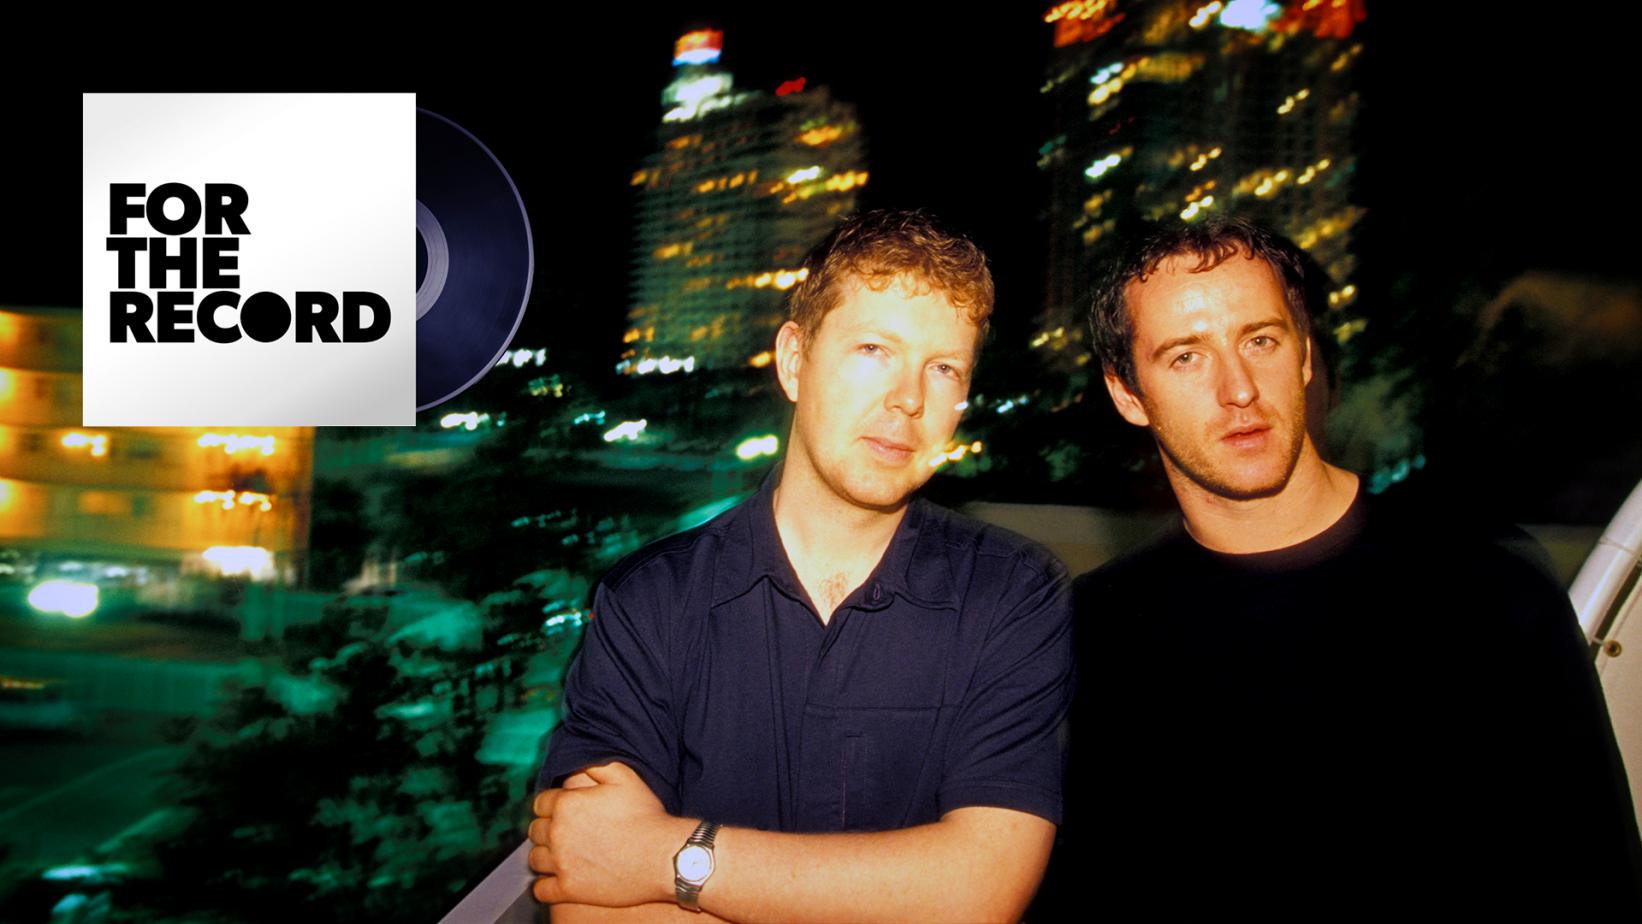 Artwork for For The Record episode on Sasha & John Digweed's 'Northern Exposure'